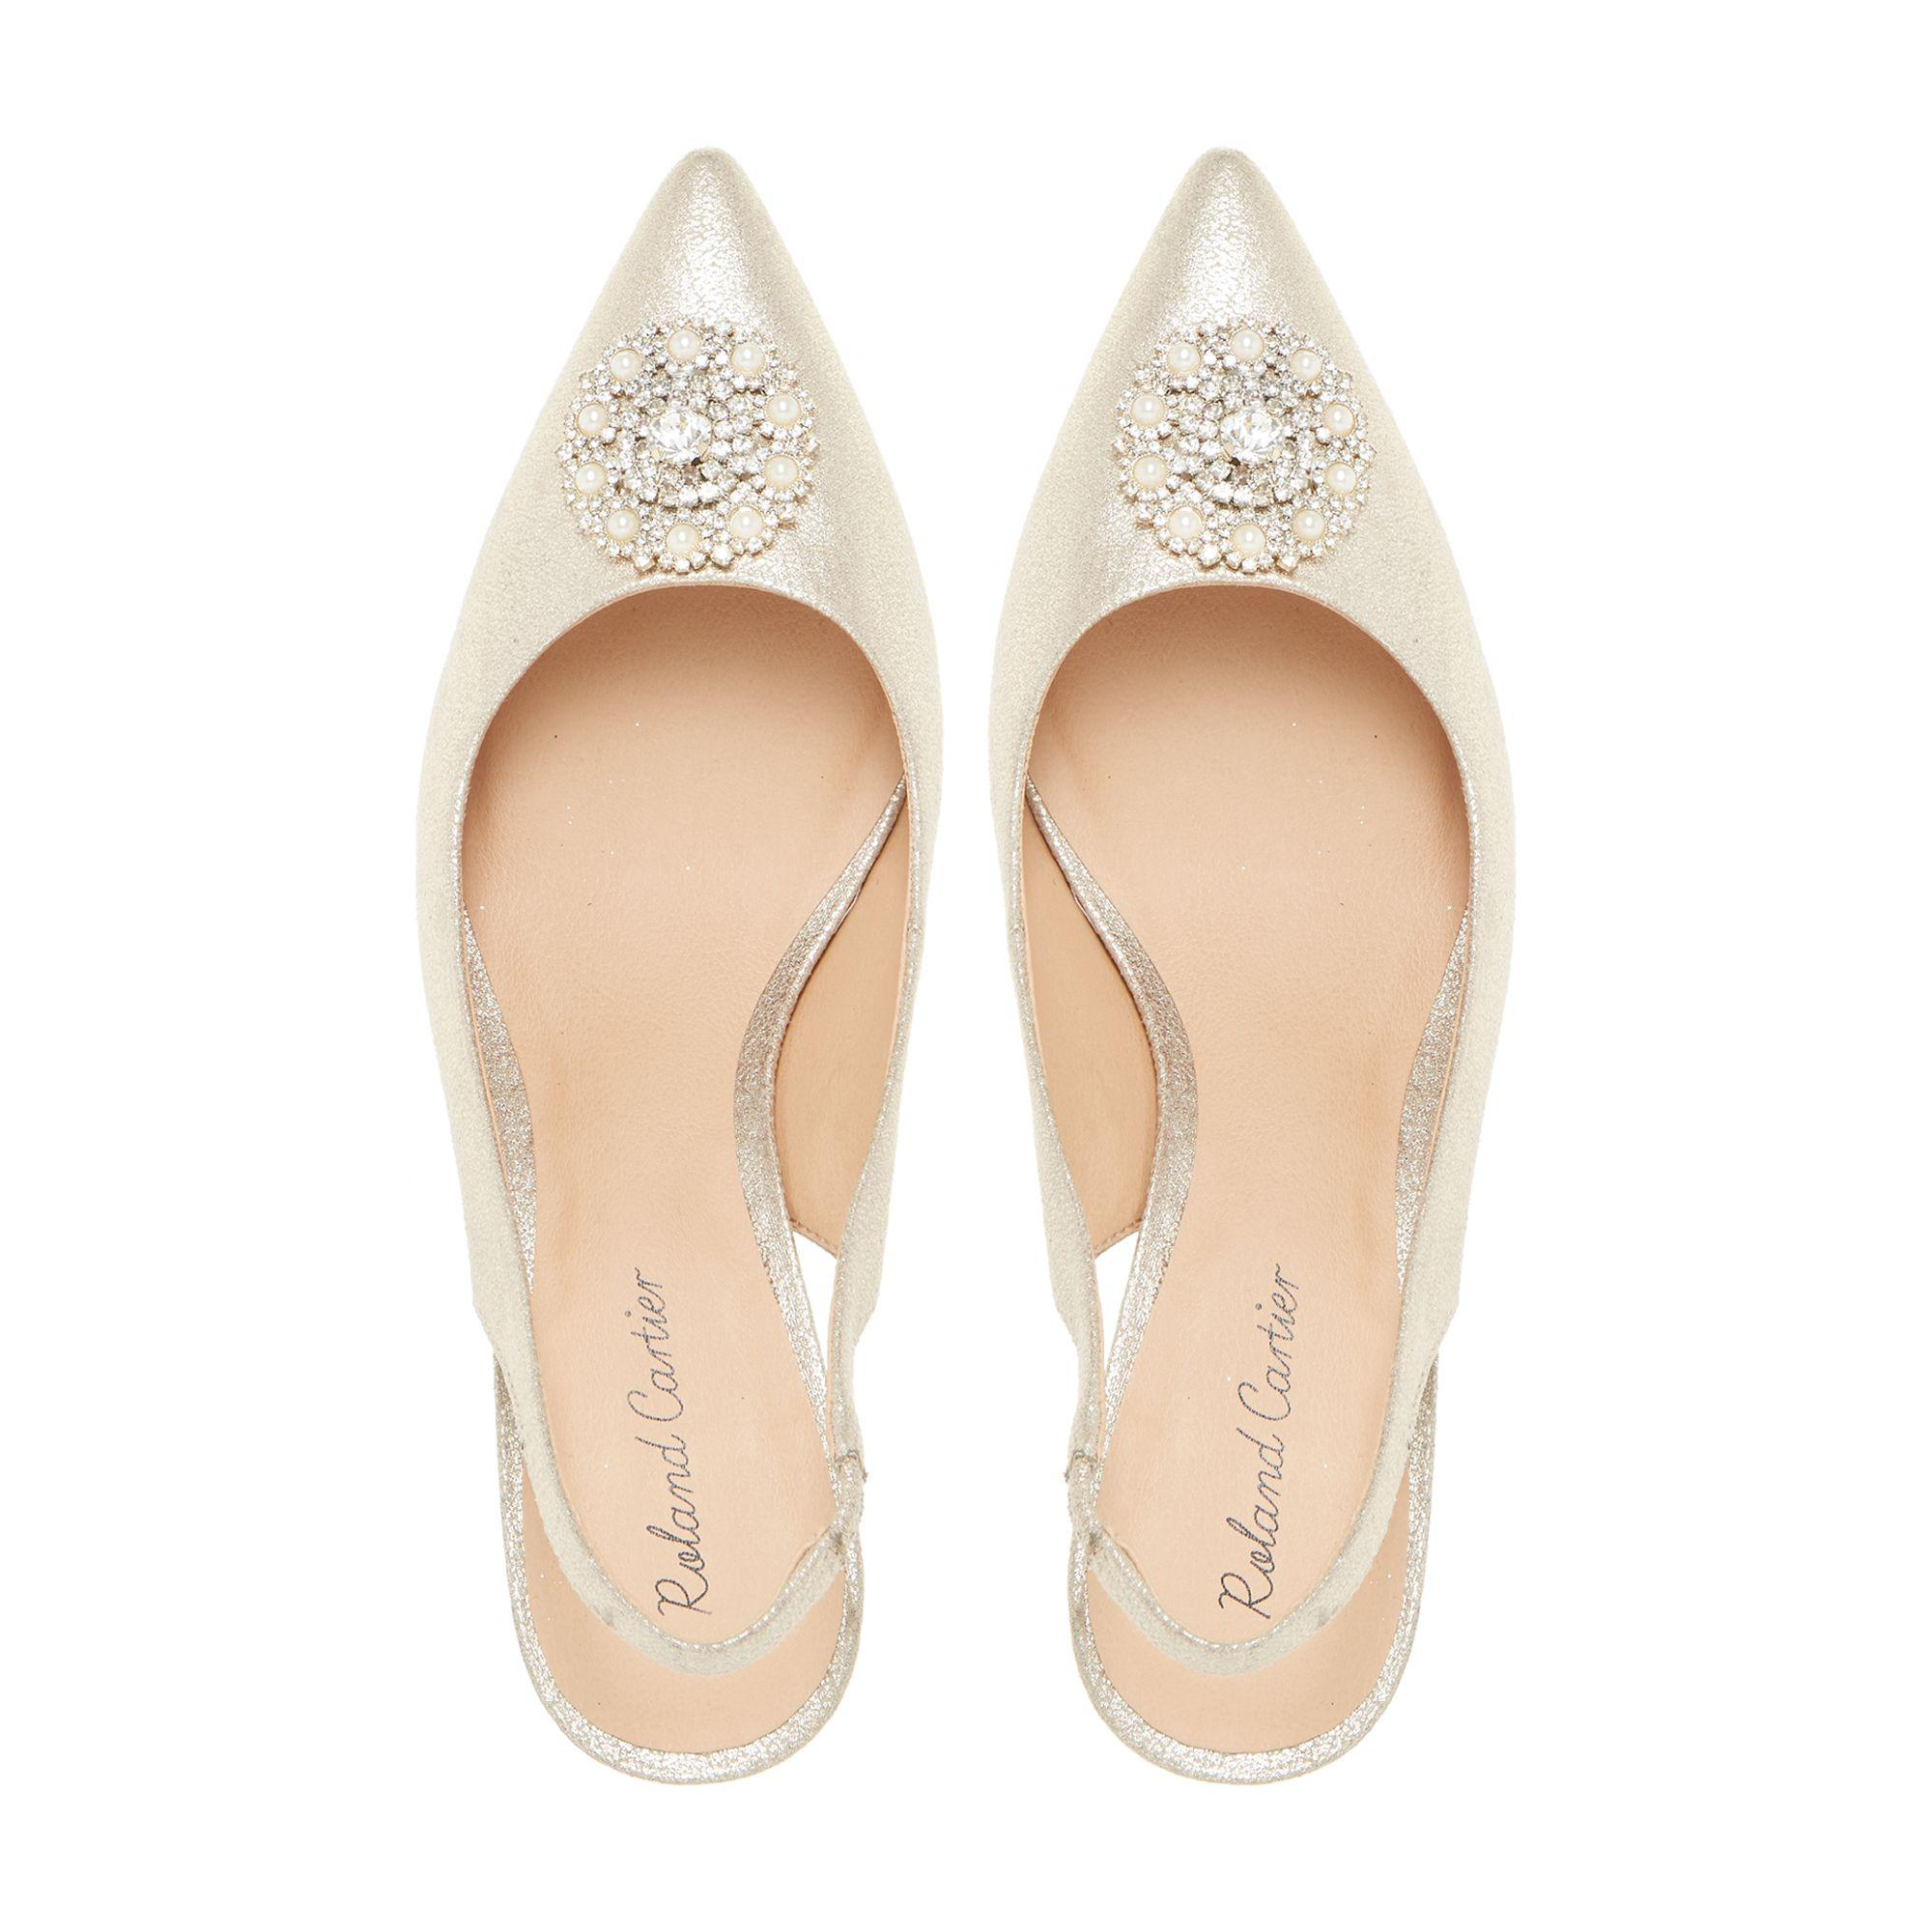 58ecd36d5f ... 'dolcie' Embellished Slingback Court Shoes - Lyst. View fullscreen